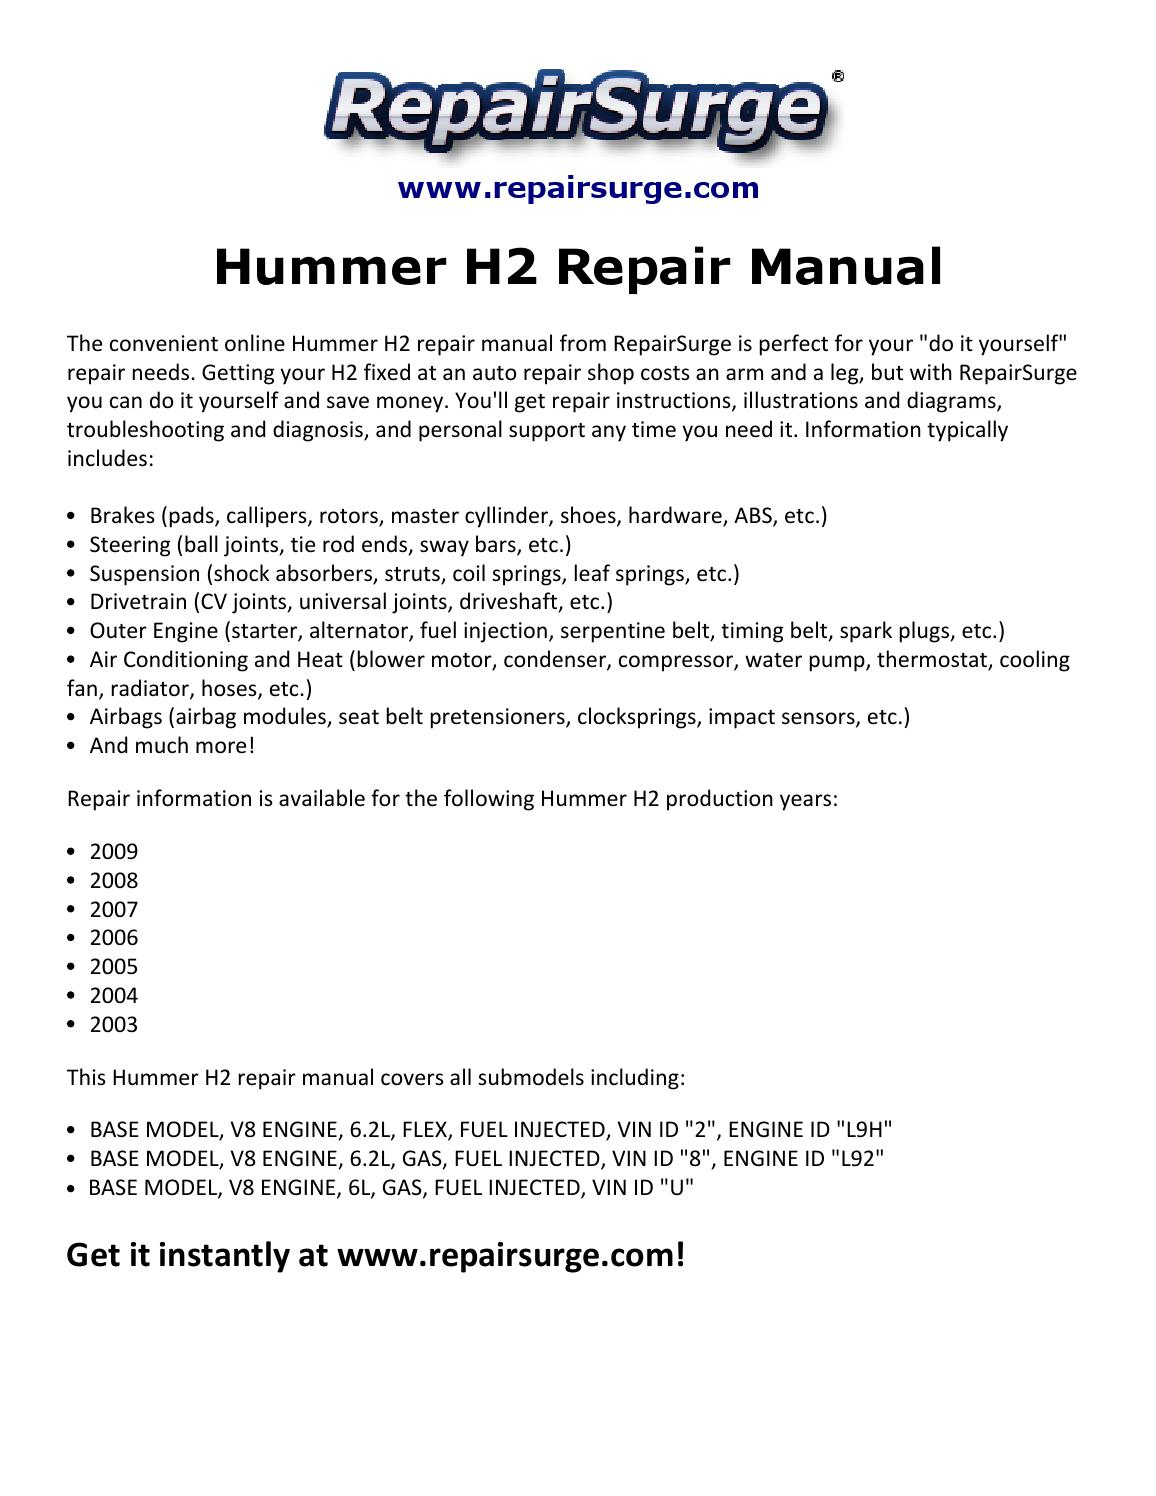 2006 Hummer H2 Belt Diagram Archive Of Automotive Wiring 2005 Repair Manual 2003 2009 By Arrack 555 Issuu Rh Com